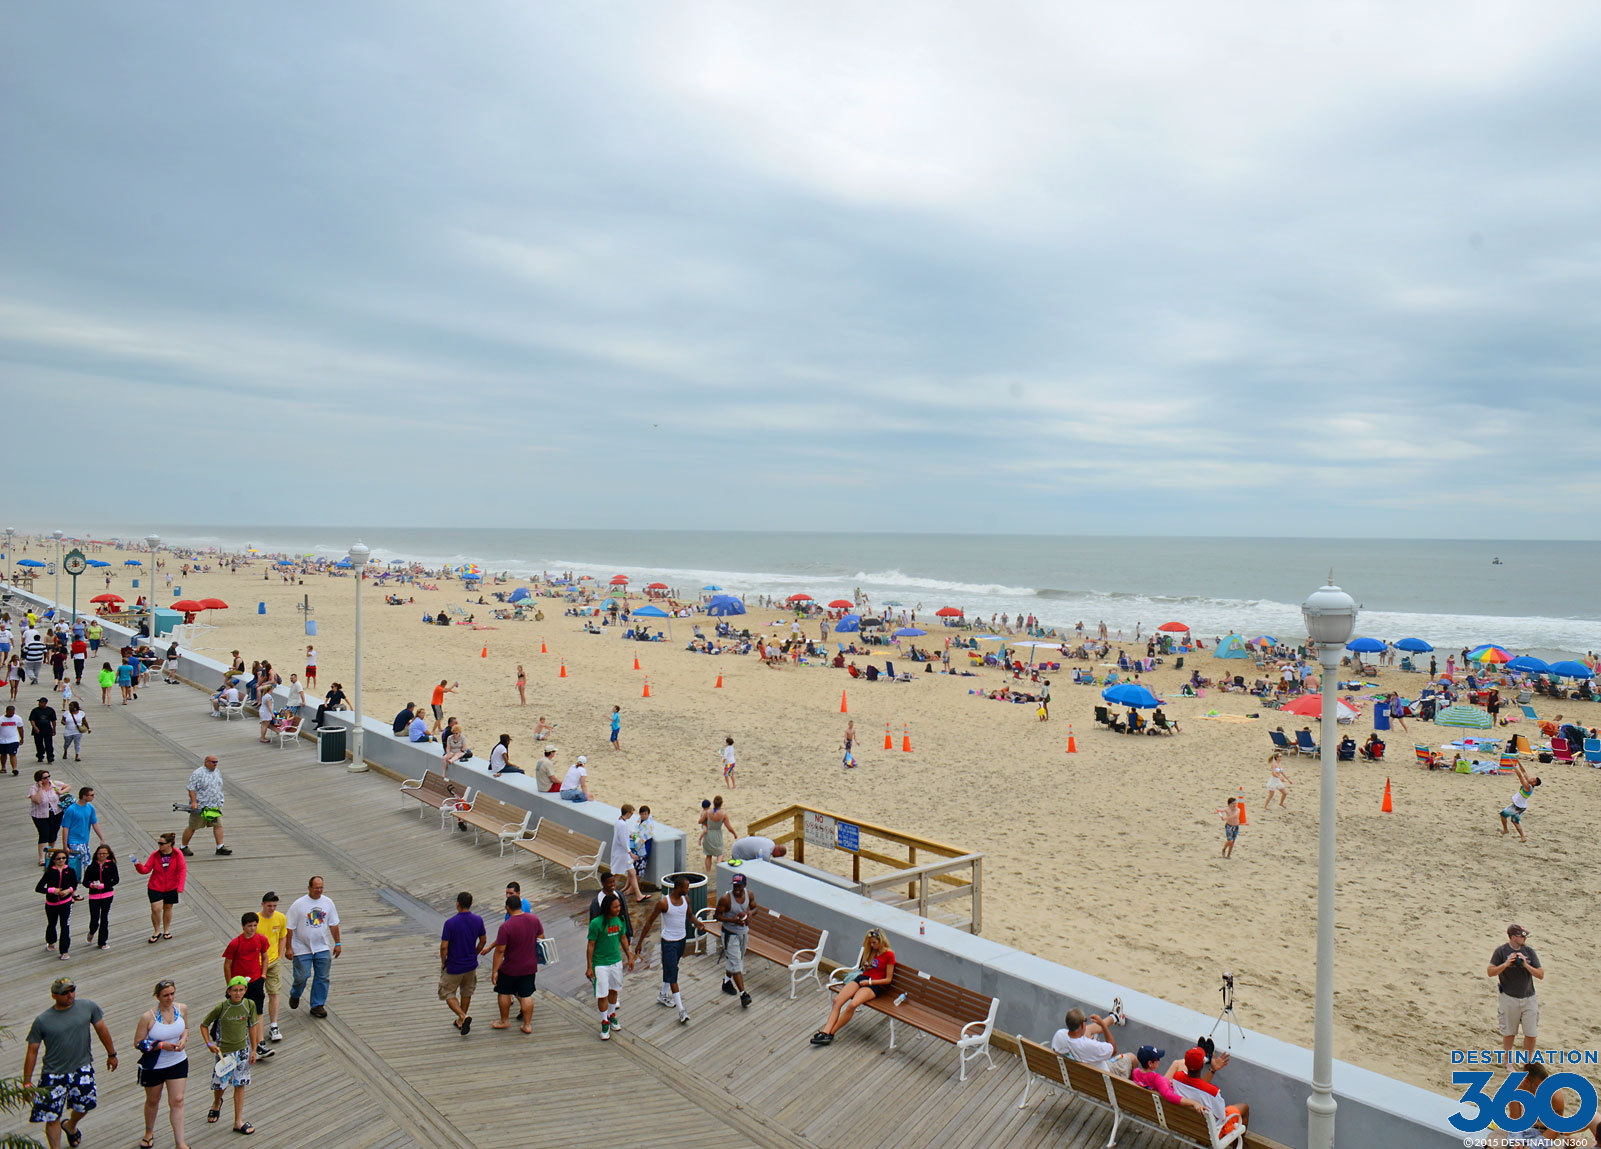 Hotels In Ocean City Md >> Ocean City Maryland Boardwalk - Ocean City Boardwalk Attractions